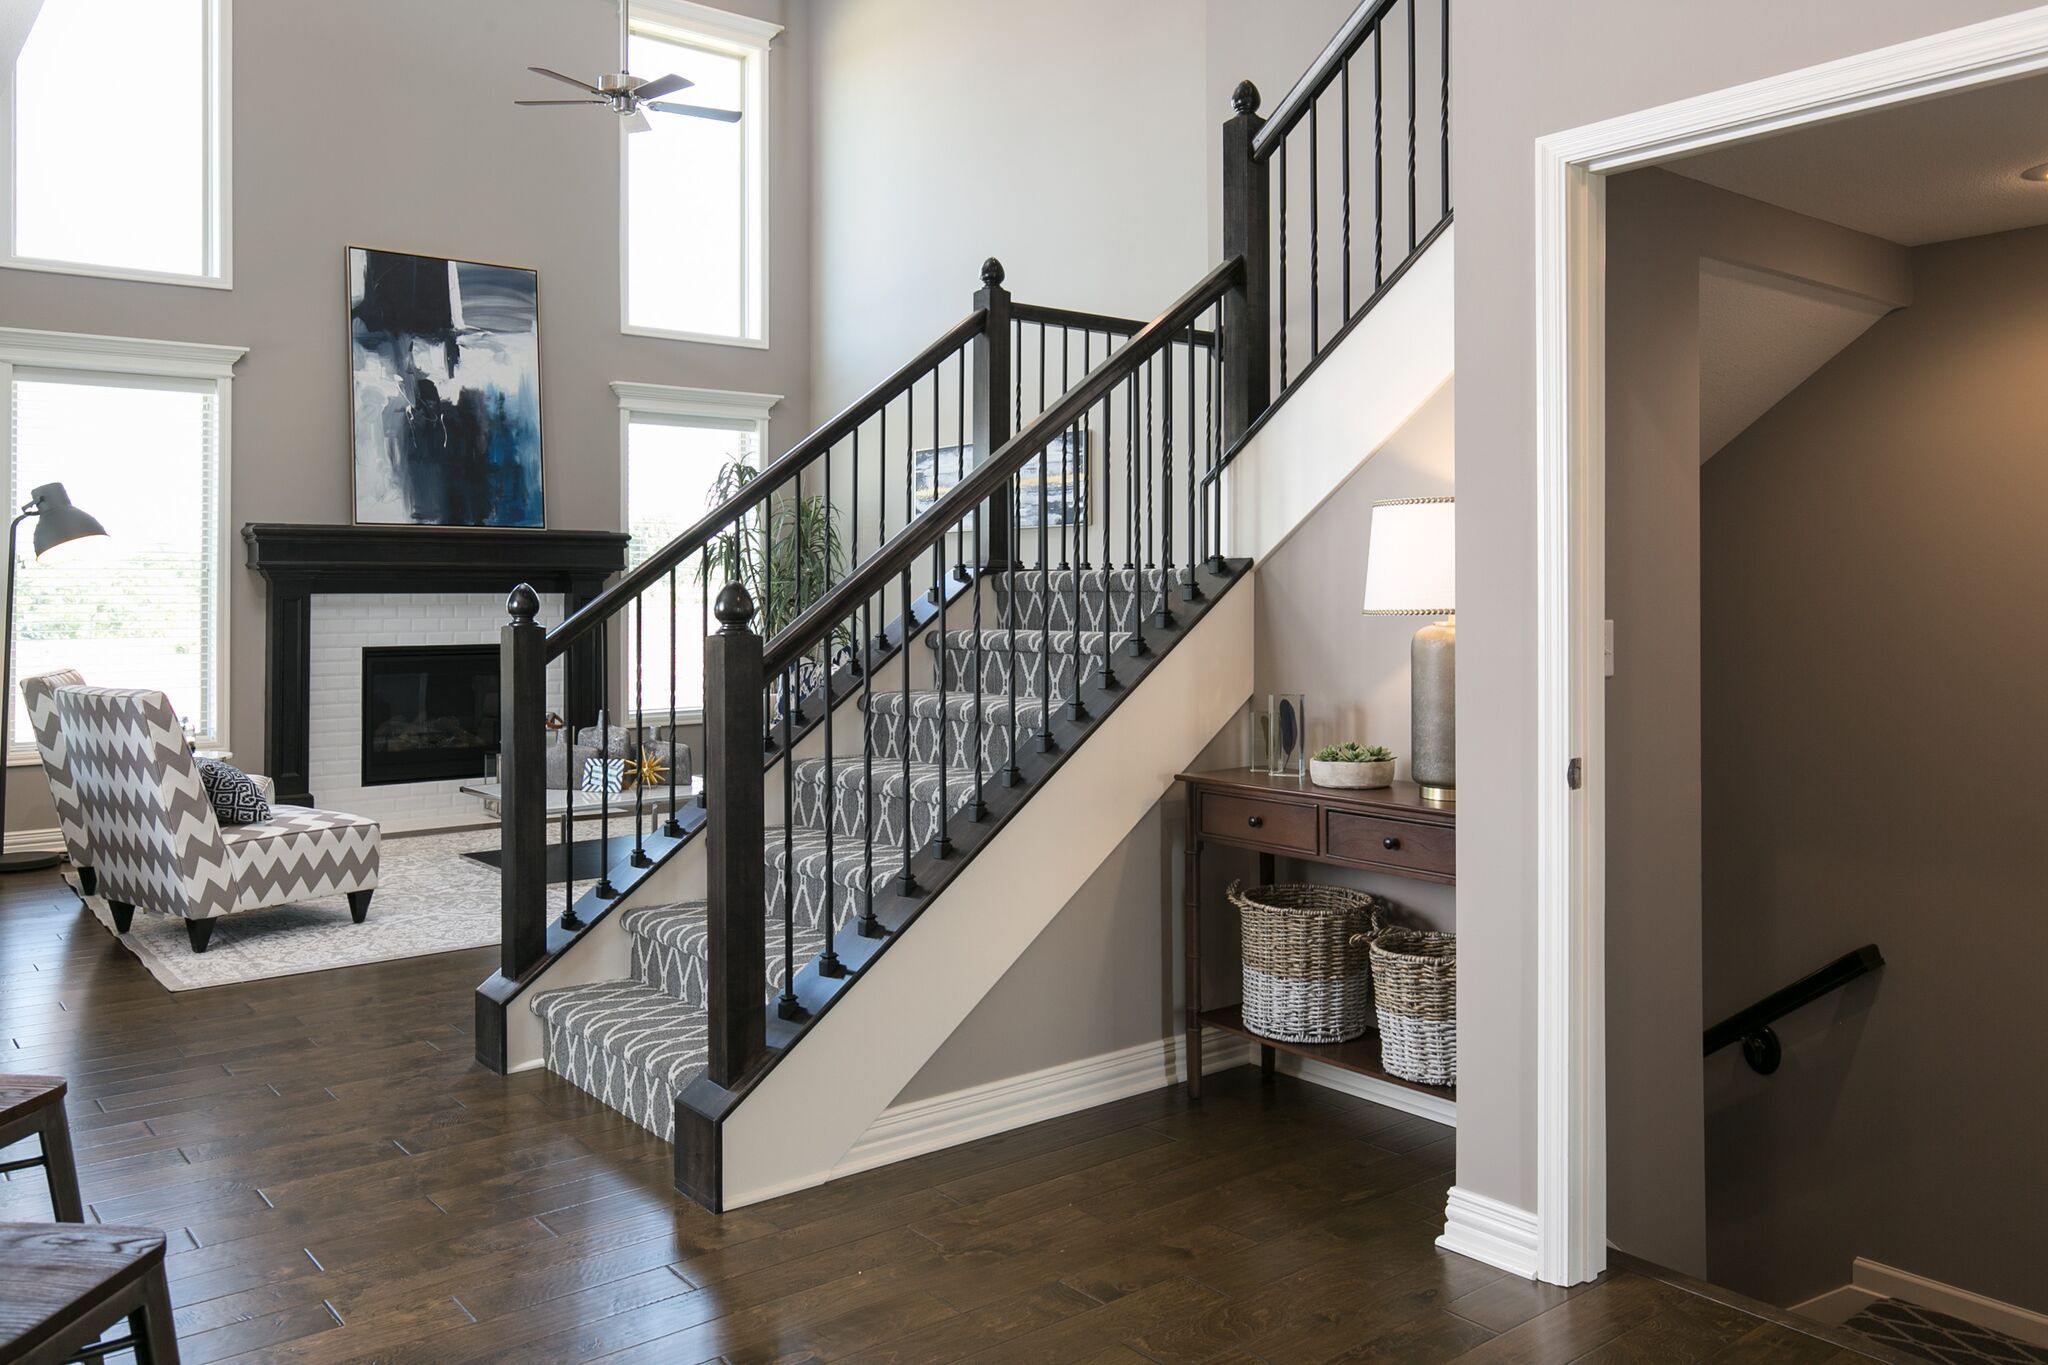 Living Area featured in the Bayfield - IA By Summit Homes in Des Moines, IA